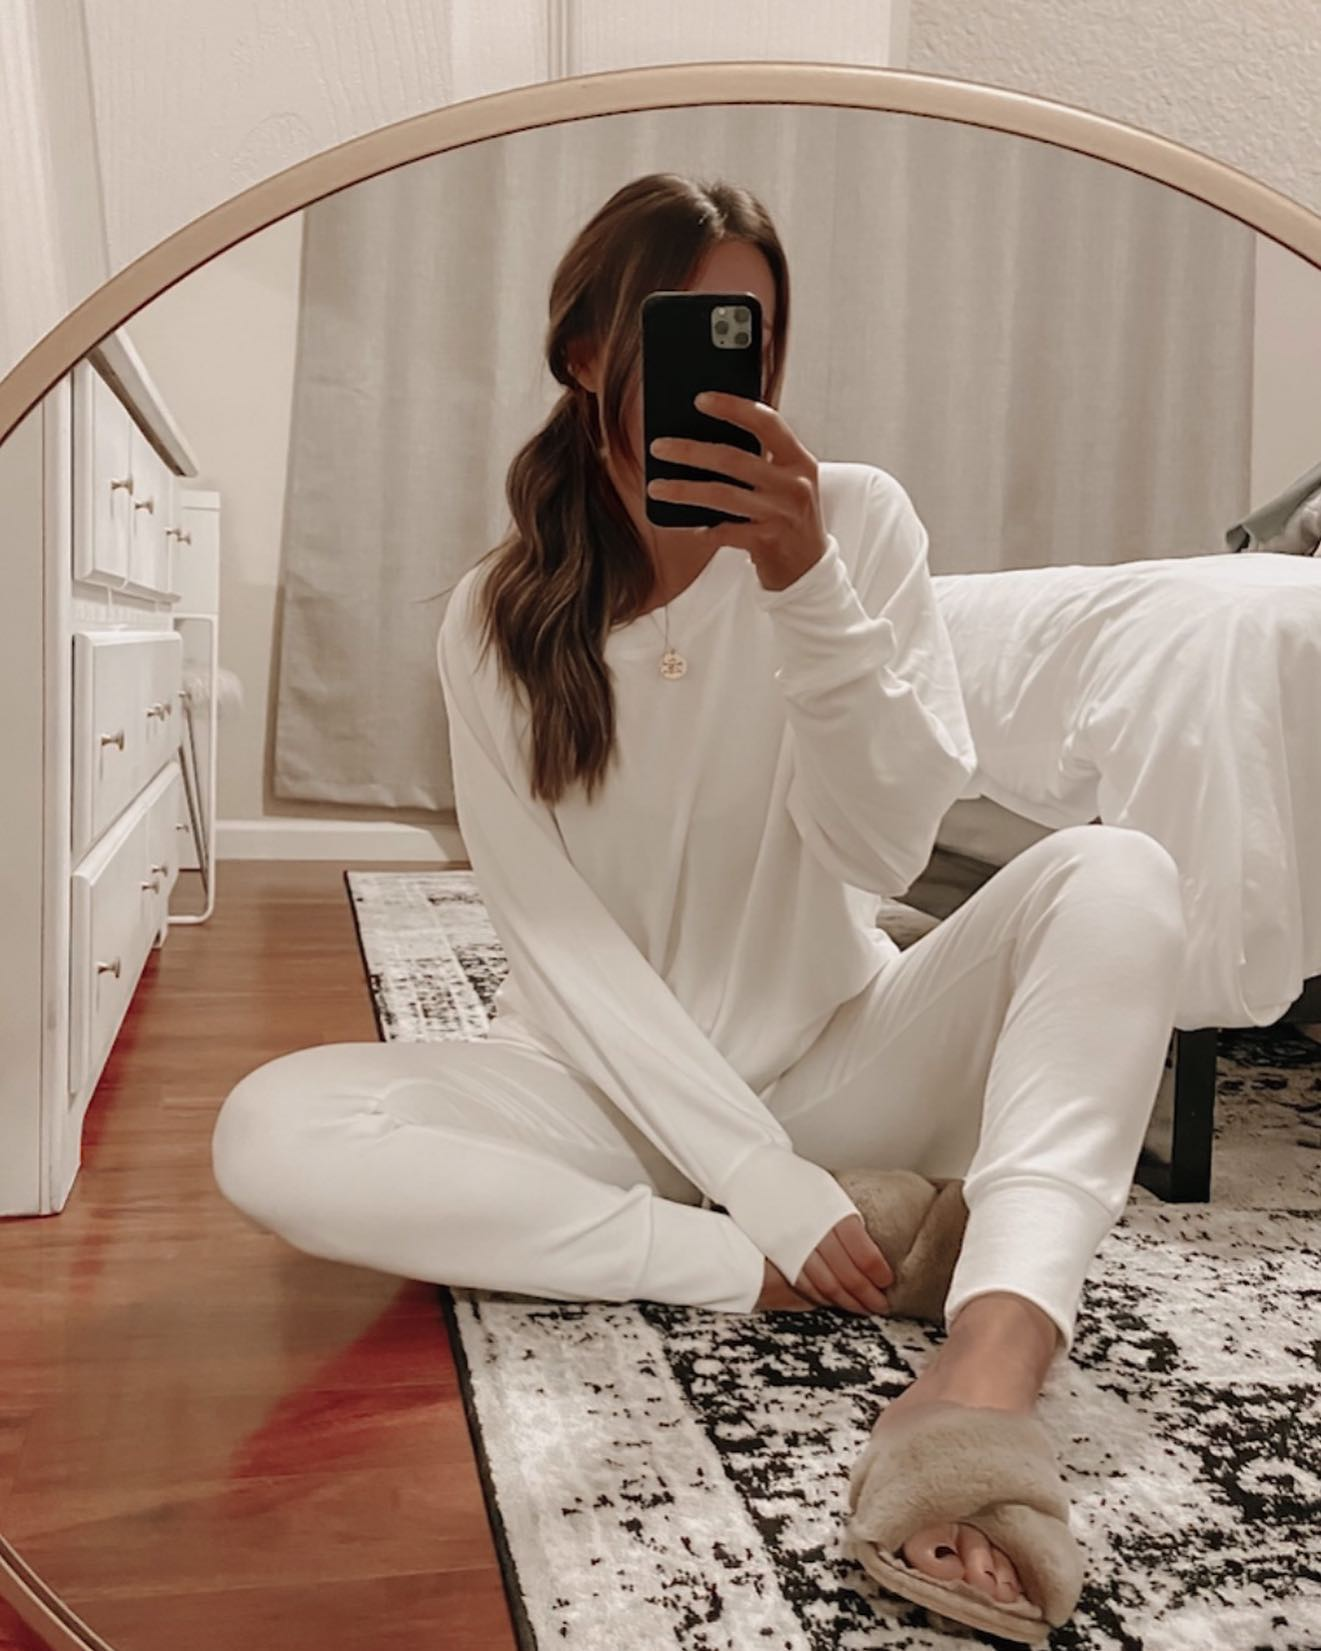 Woman taking a mirror selfie with loungewear on. Woman taking mirror pic. Woman wearing loungewear sitting on the floor.